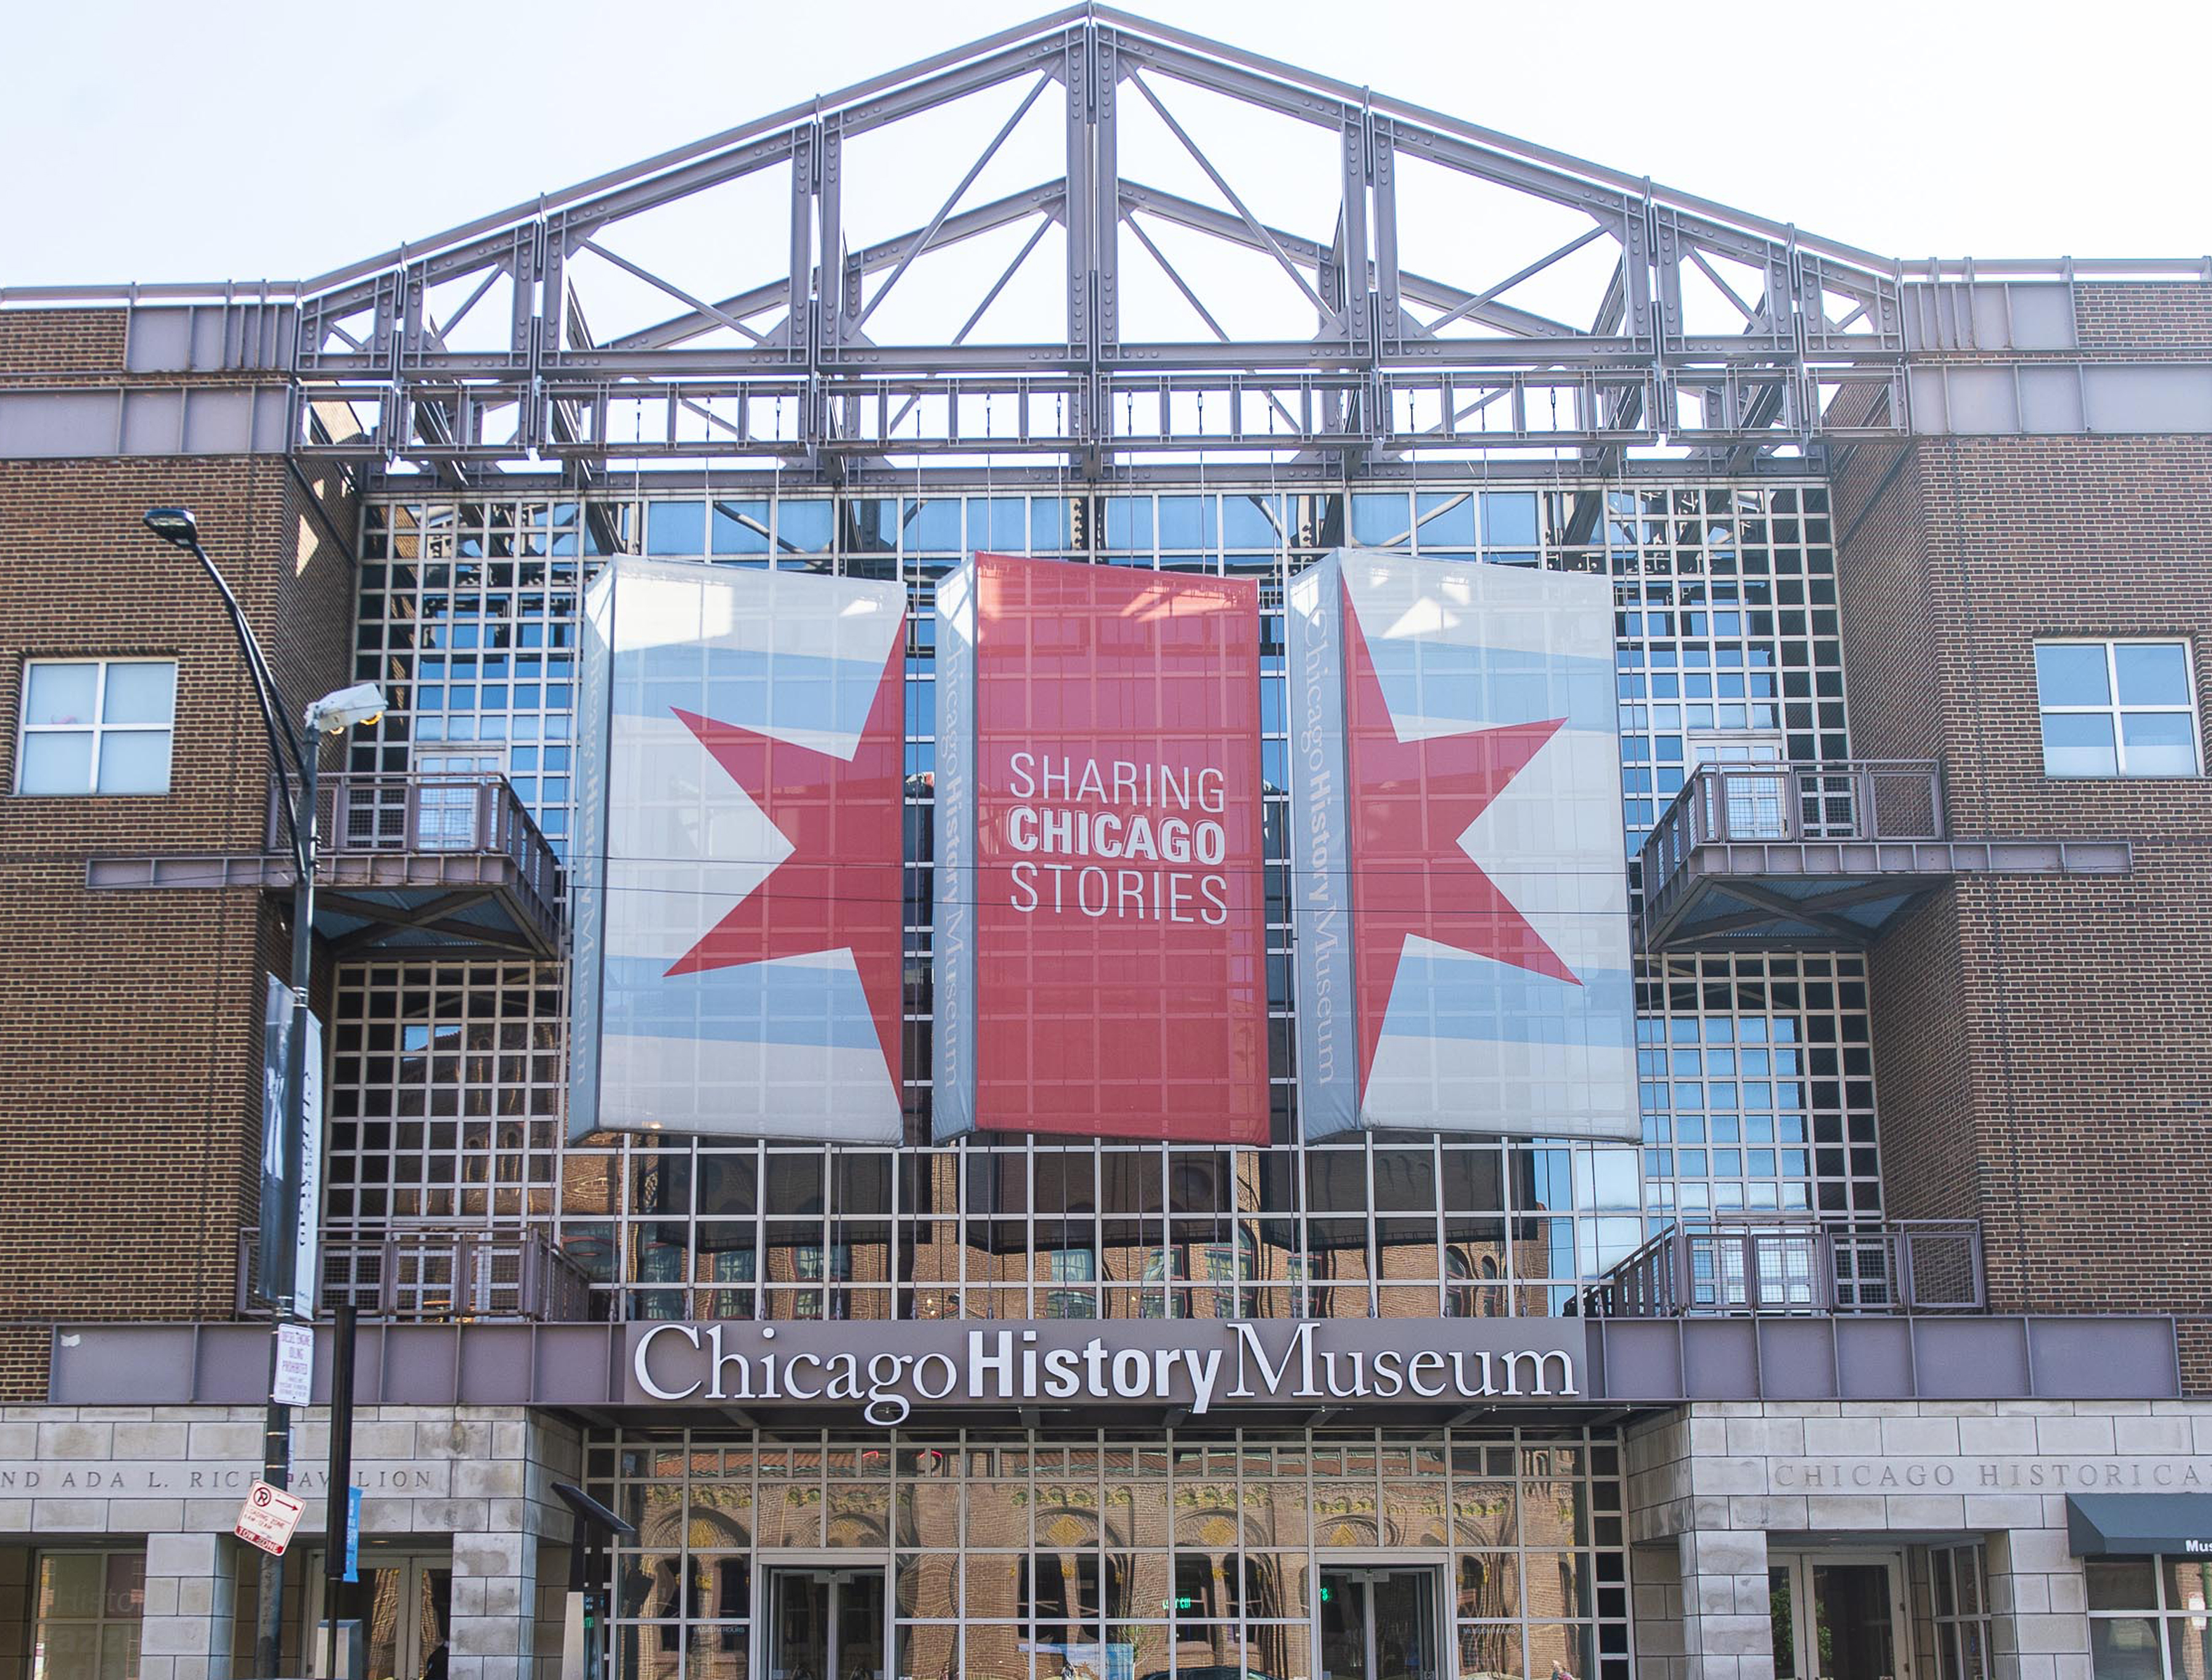 The Chicago History Museum, 1601 N. Clark St.